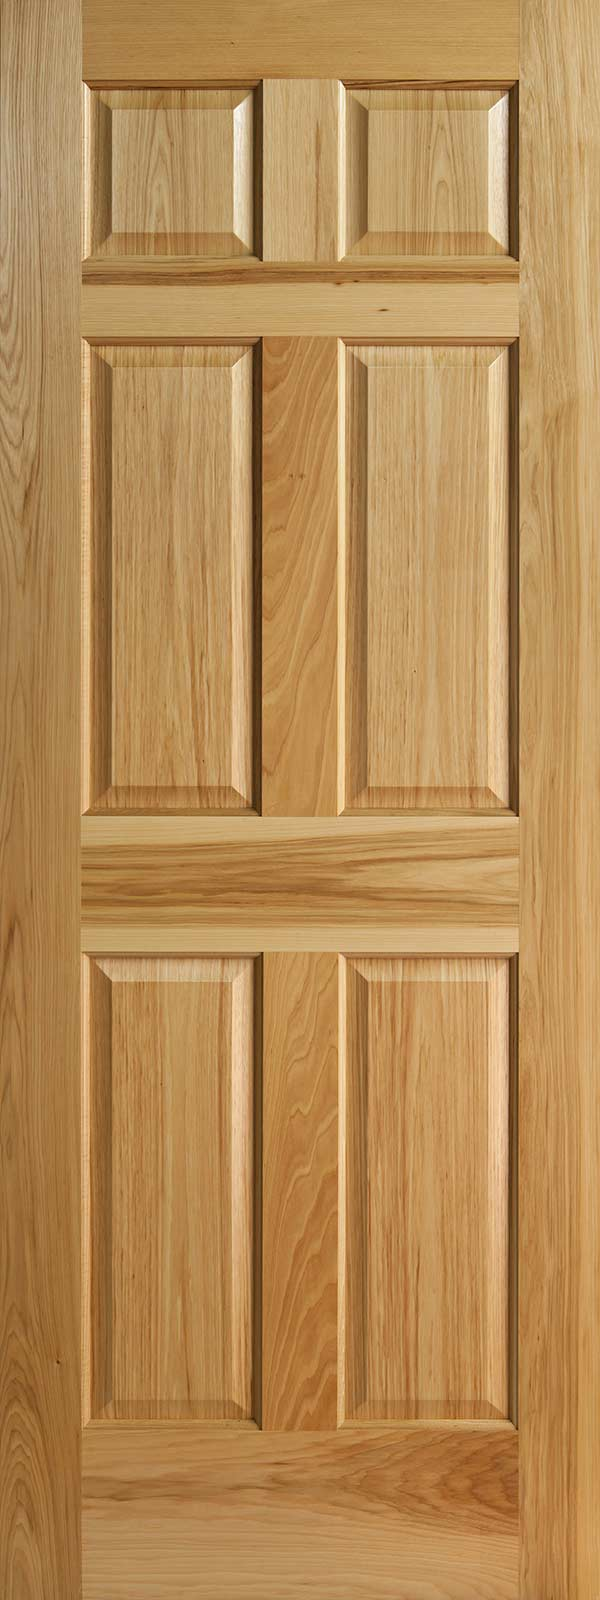 Hickory 6 panel interior doors with raised panels for Doors with panels